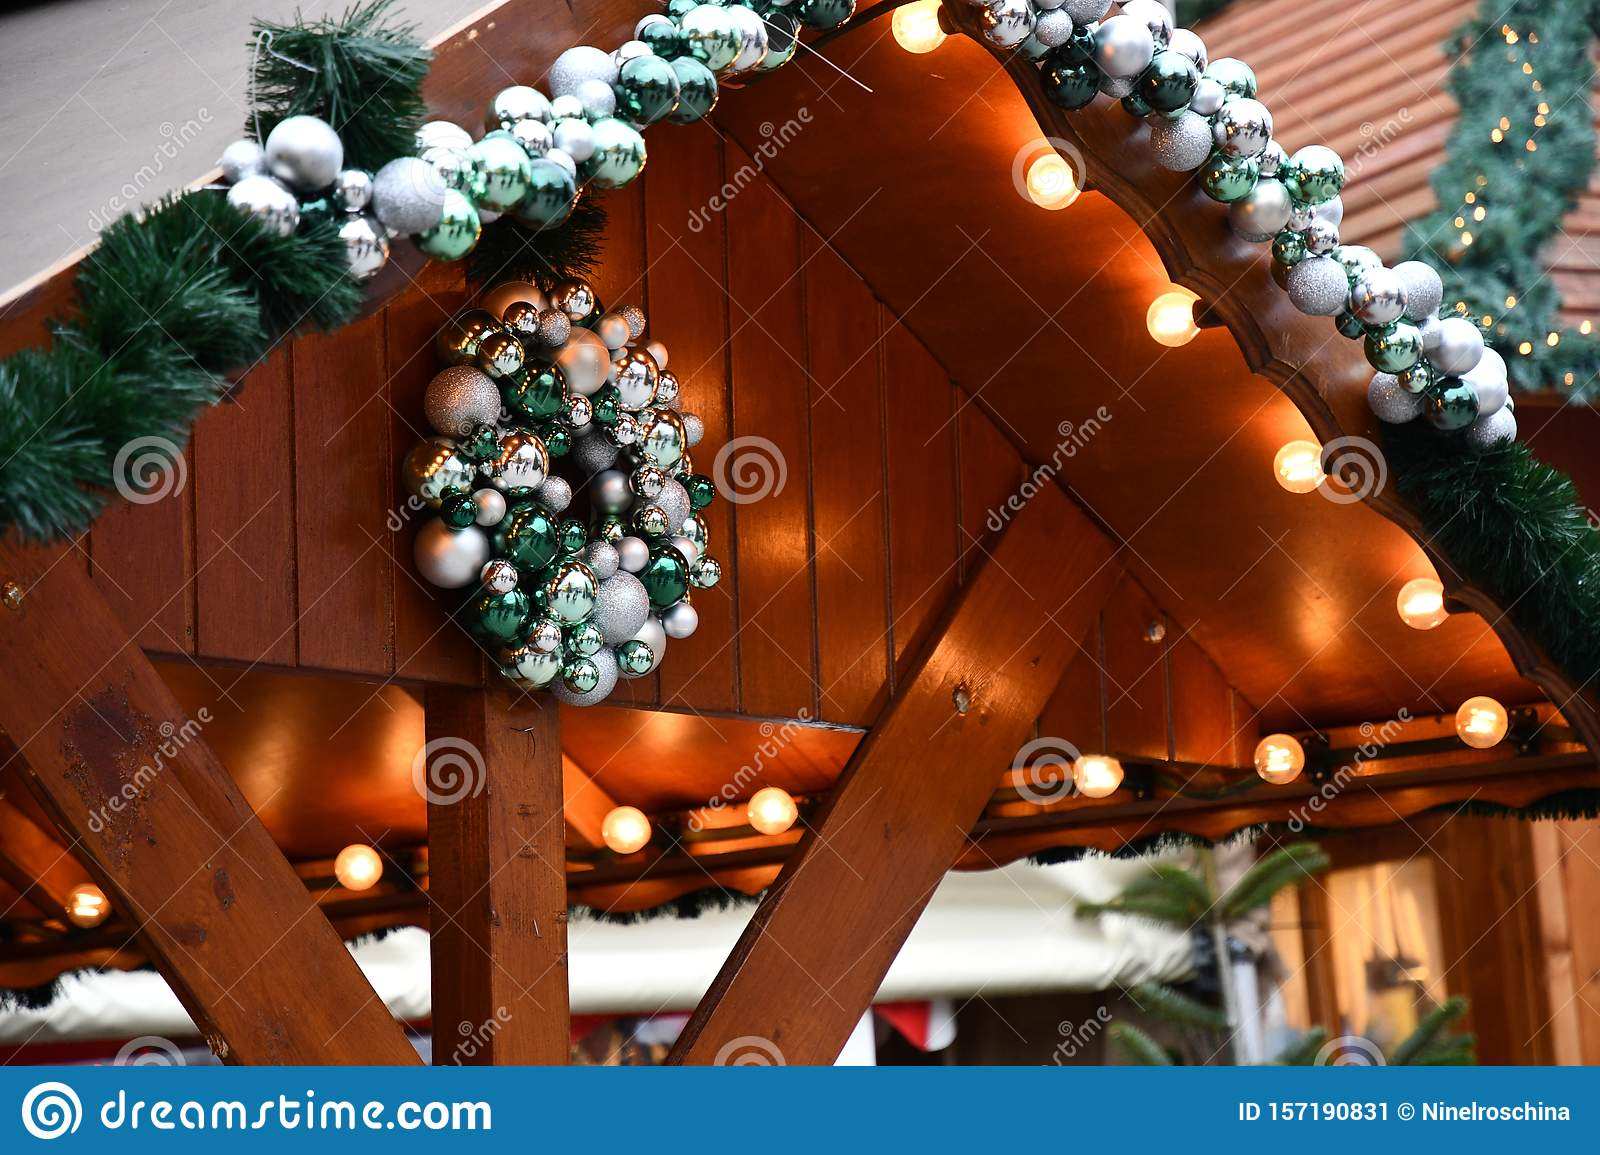 Christmas Ball Garlands.Rooftop Decorated With Silver Green Christmas Ball Garlands